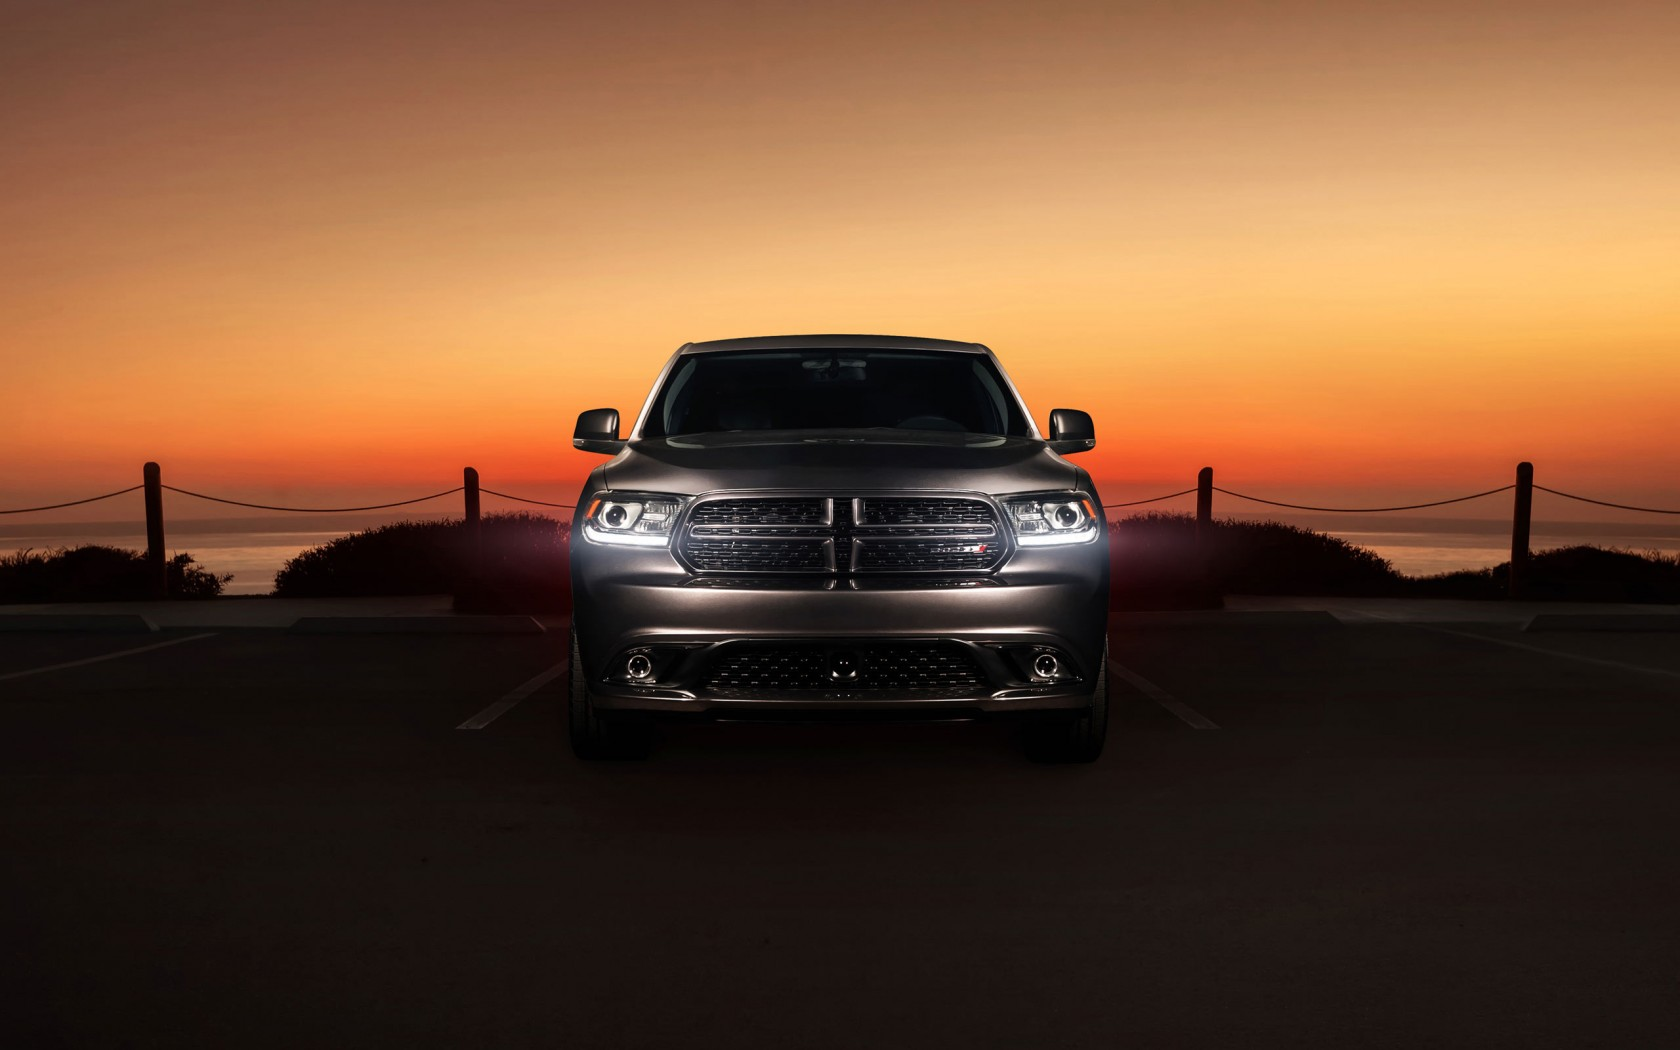 Lotus Wallpaper Iphone X 2014 Dodge Durango 2 Wallpaper Hd Car Wallpapers Id 3359